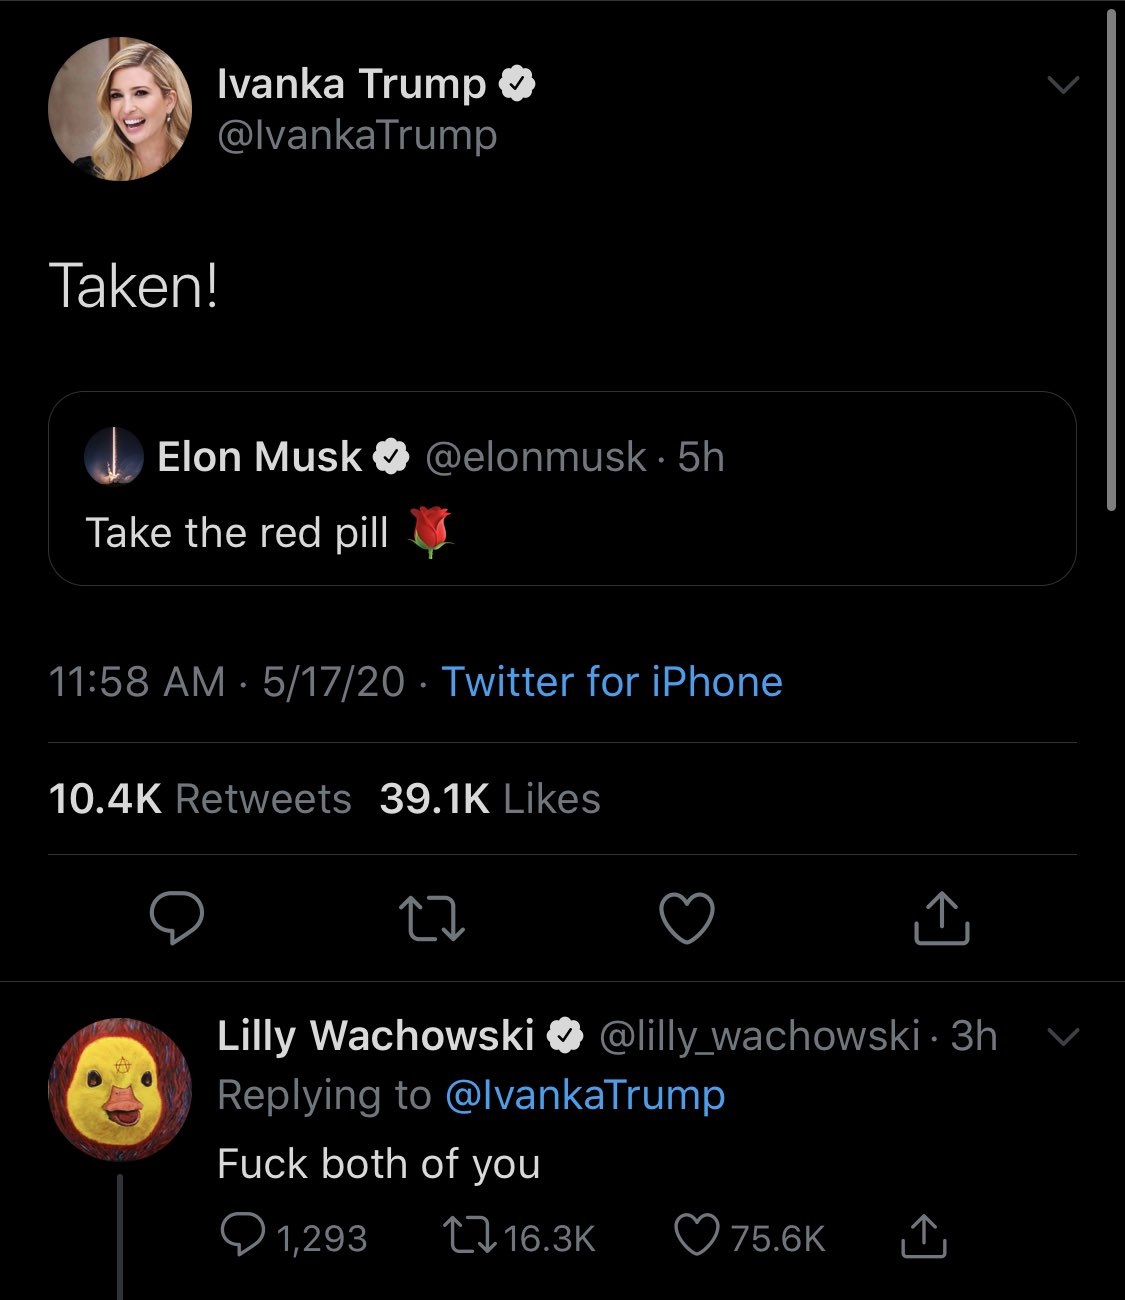 Jennifer Scheurle On Twitter The Internet Is Wild Today Summary Elon Musk Is Unexpectedly A Red Piller Ivanka Trump Jumps Onto The Reference In True Feminist Fashion And We Re Topping It All